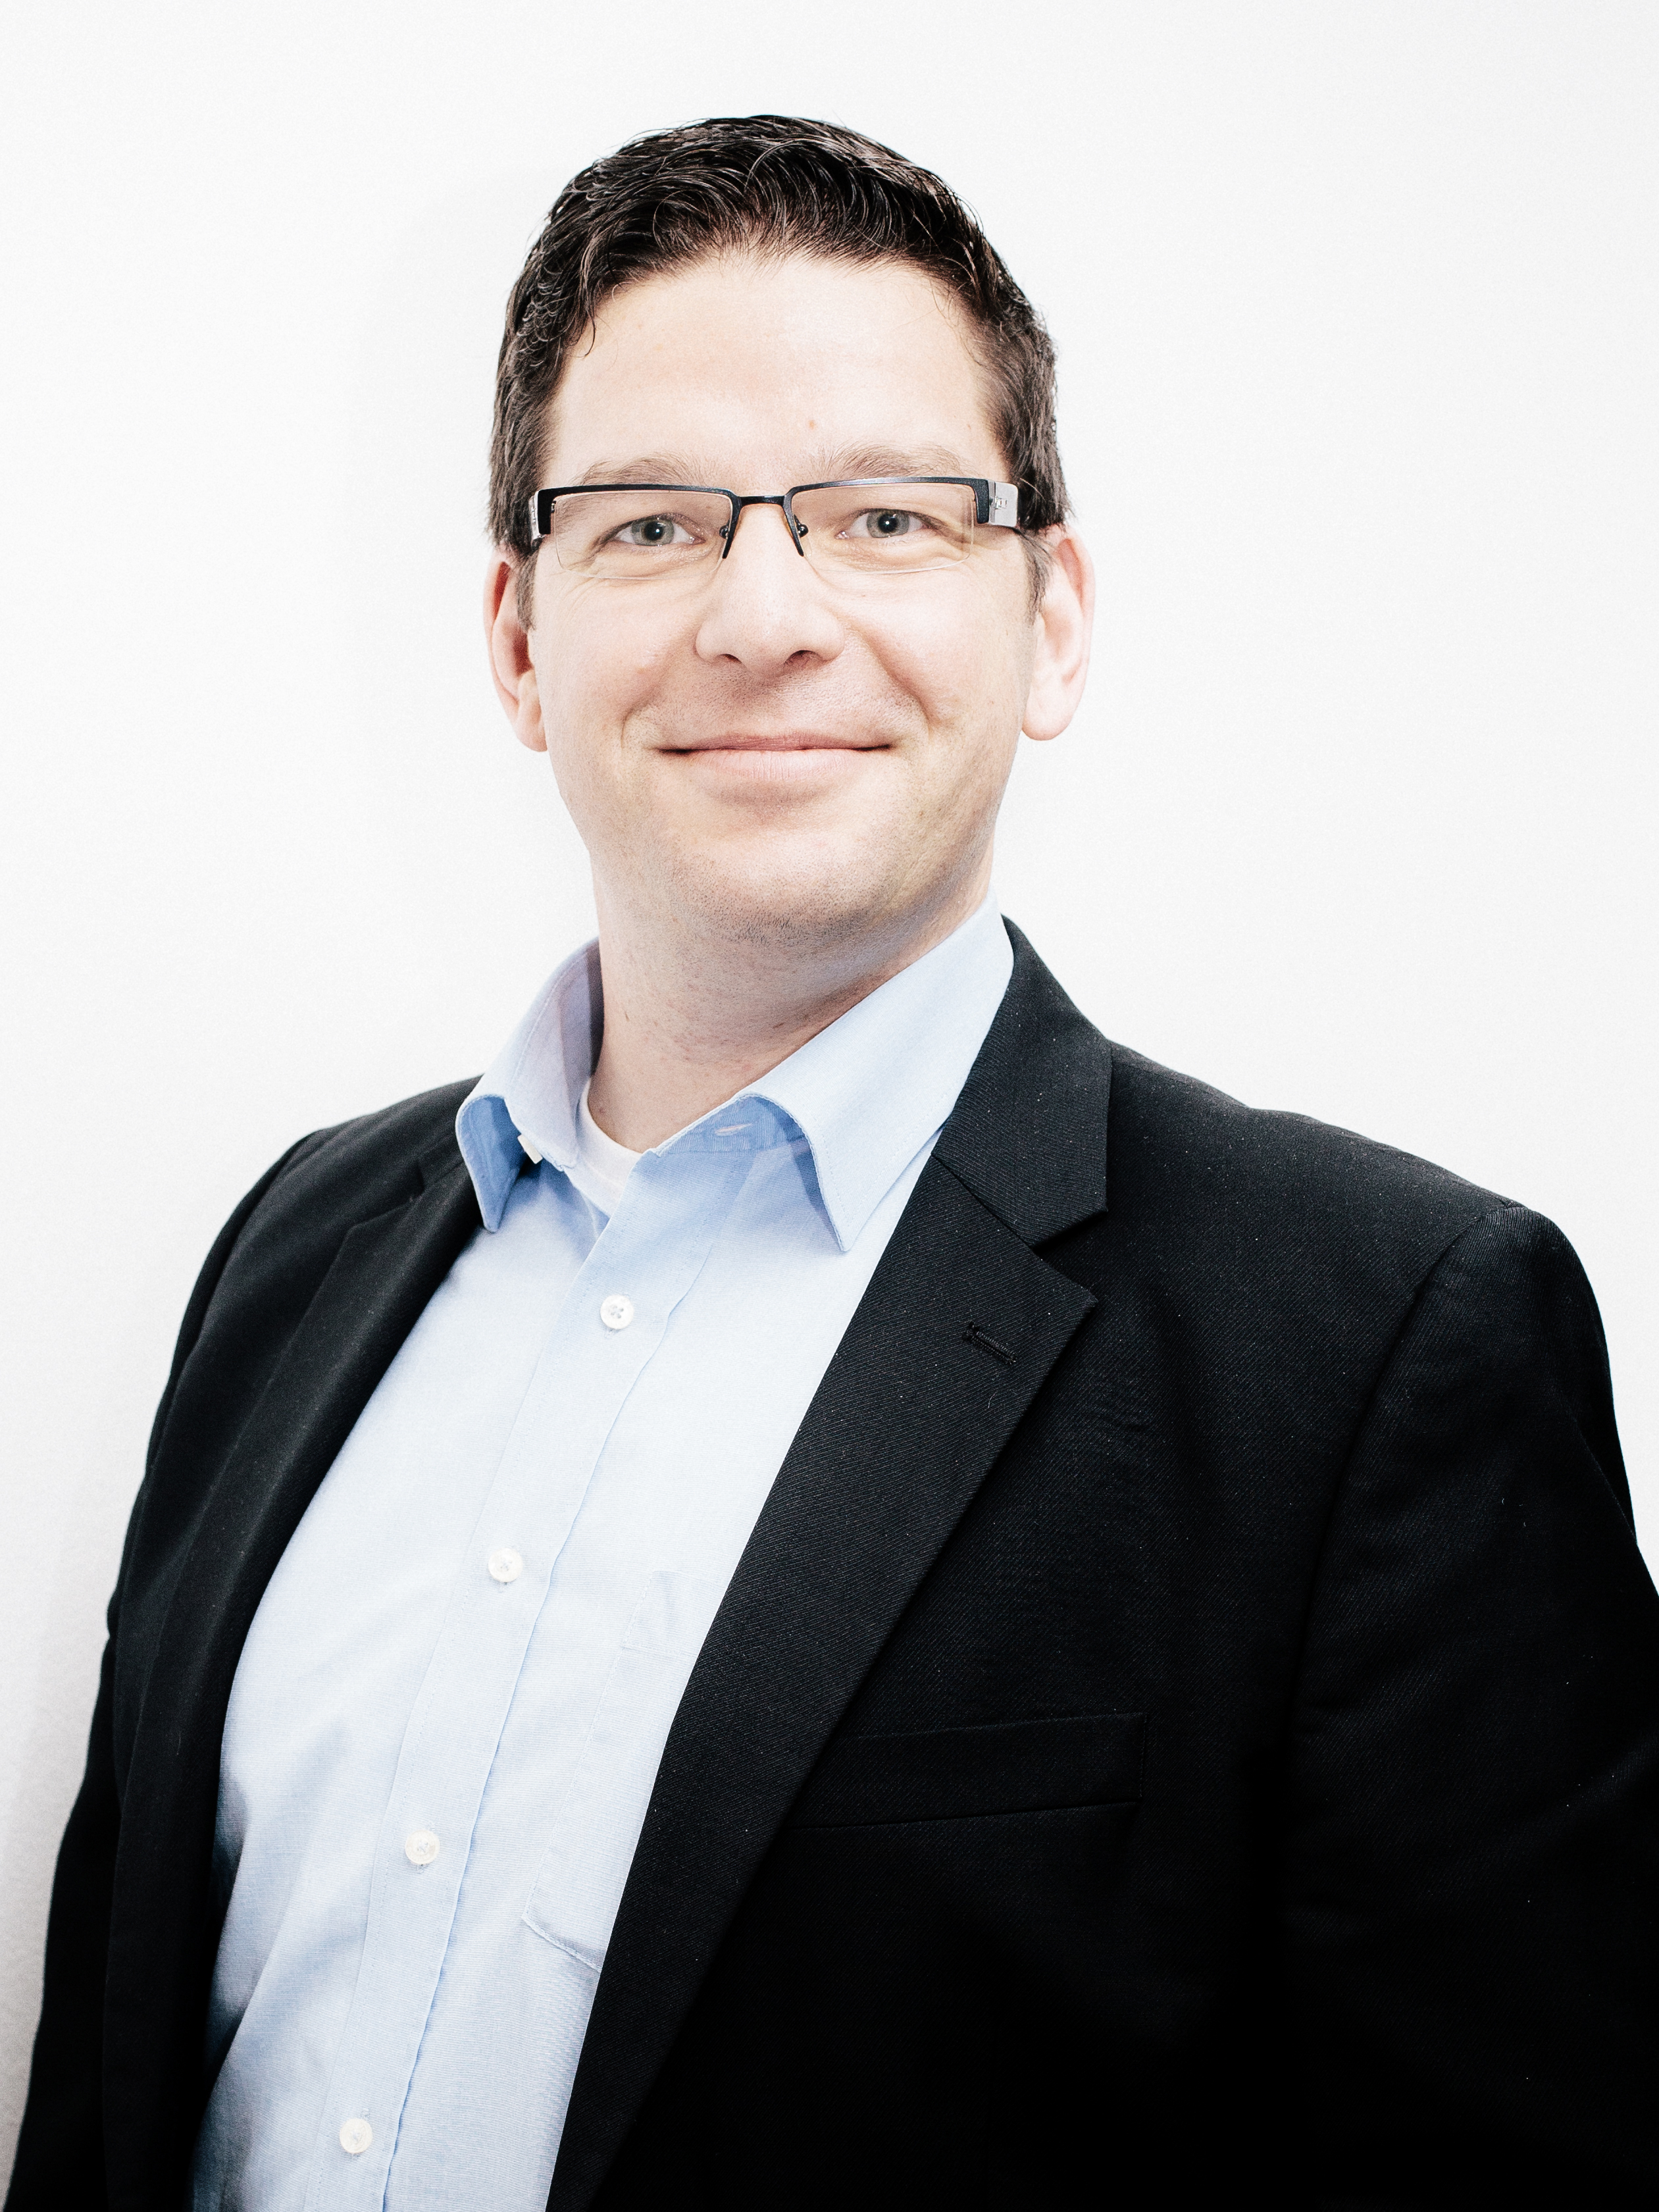 Marcus Müllenberg ist Business Development Manager Reliability Solutions bei Emerson Automations Solutions